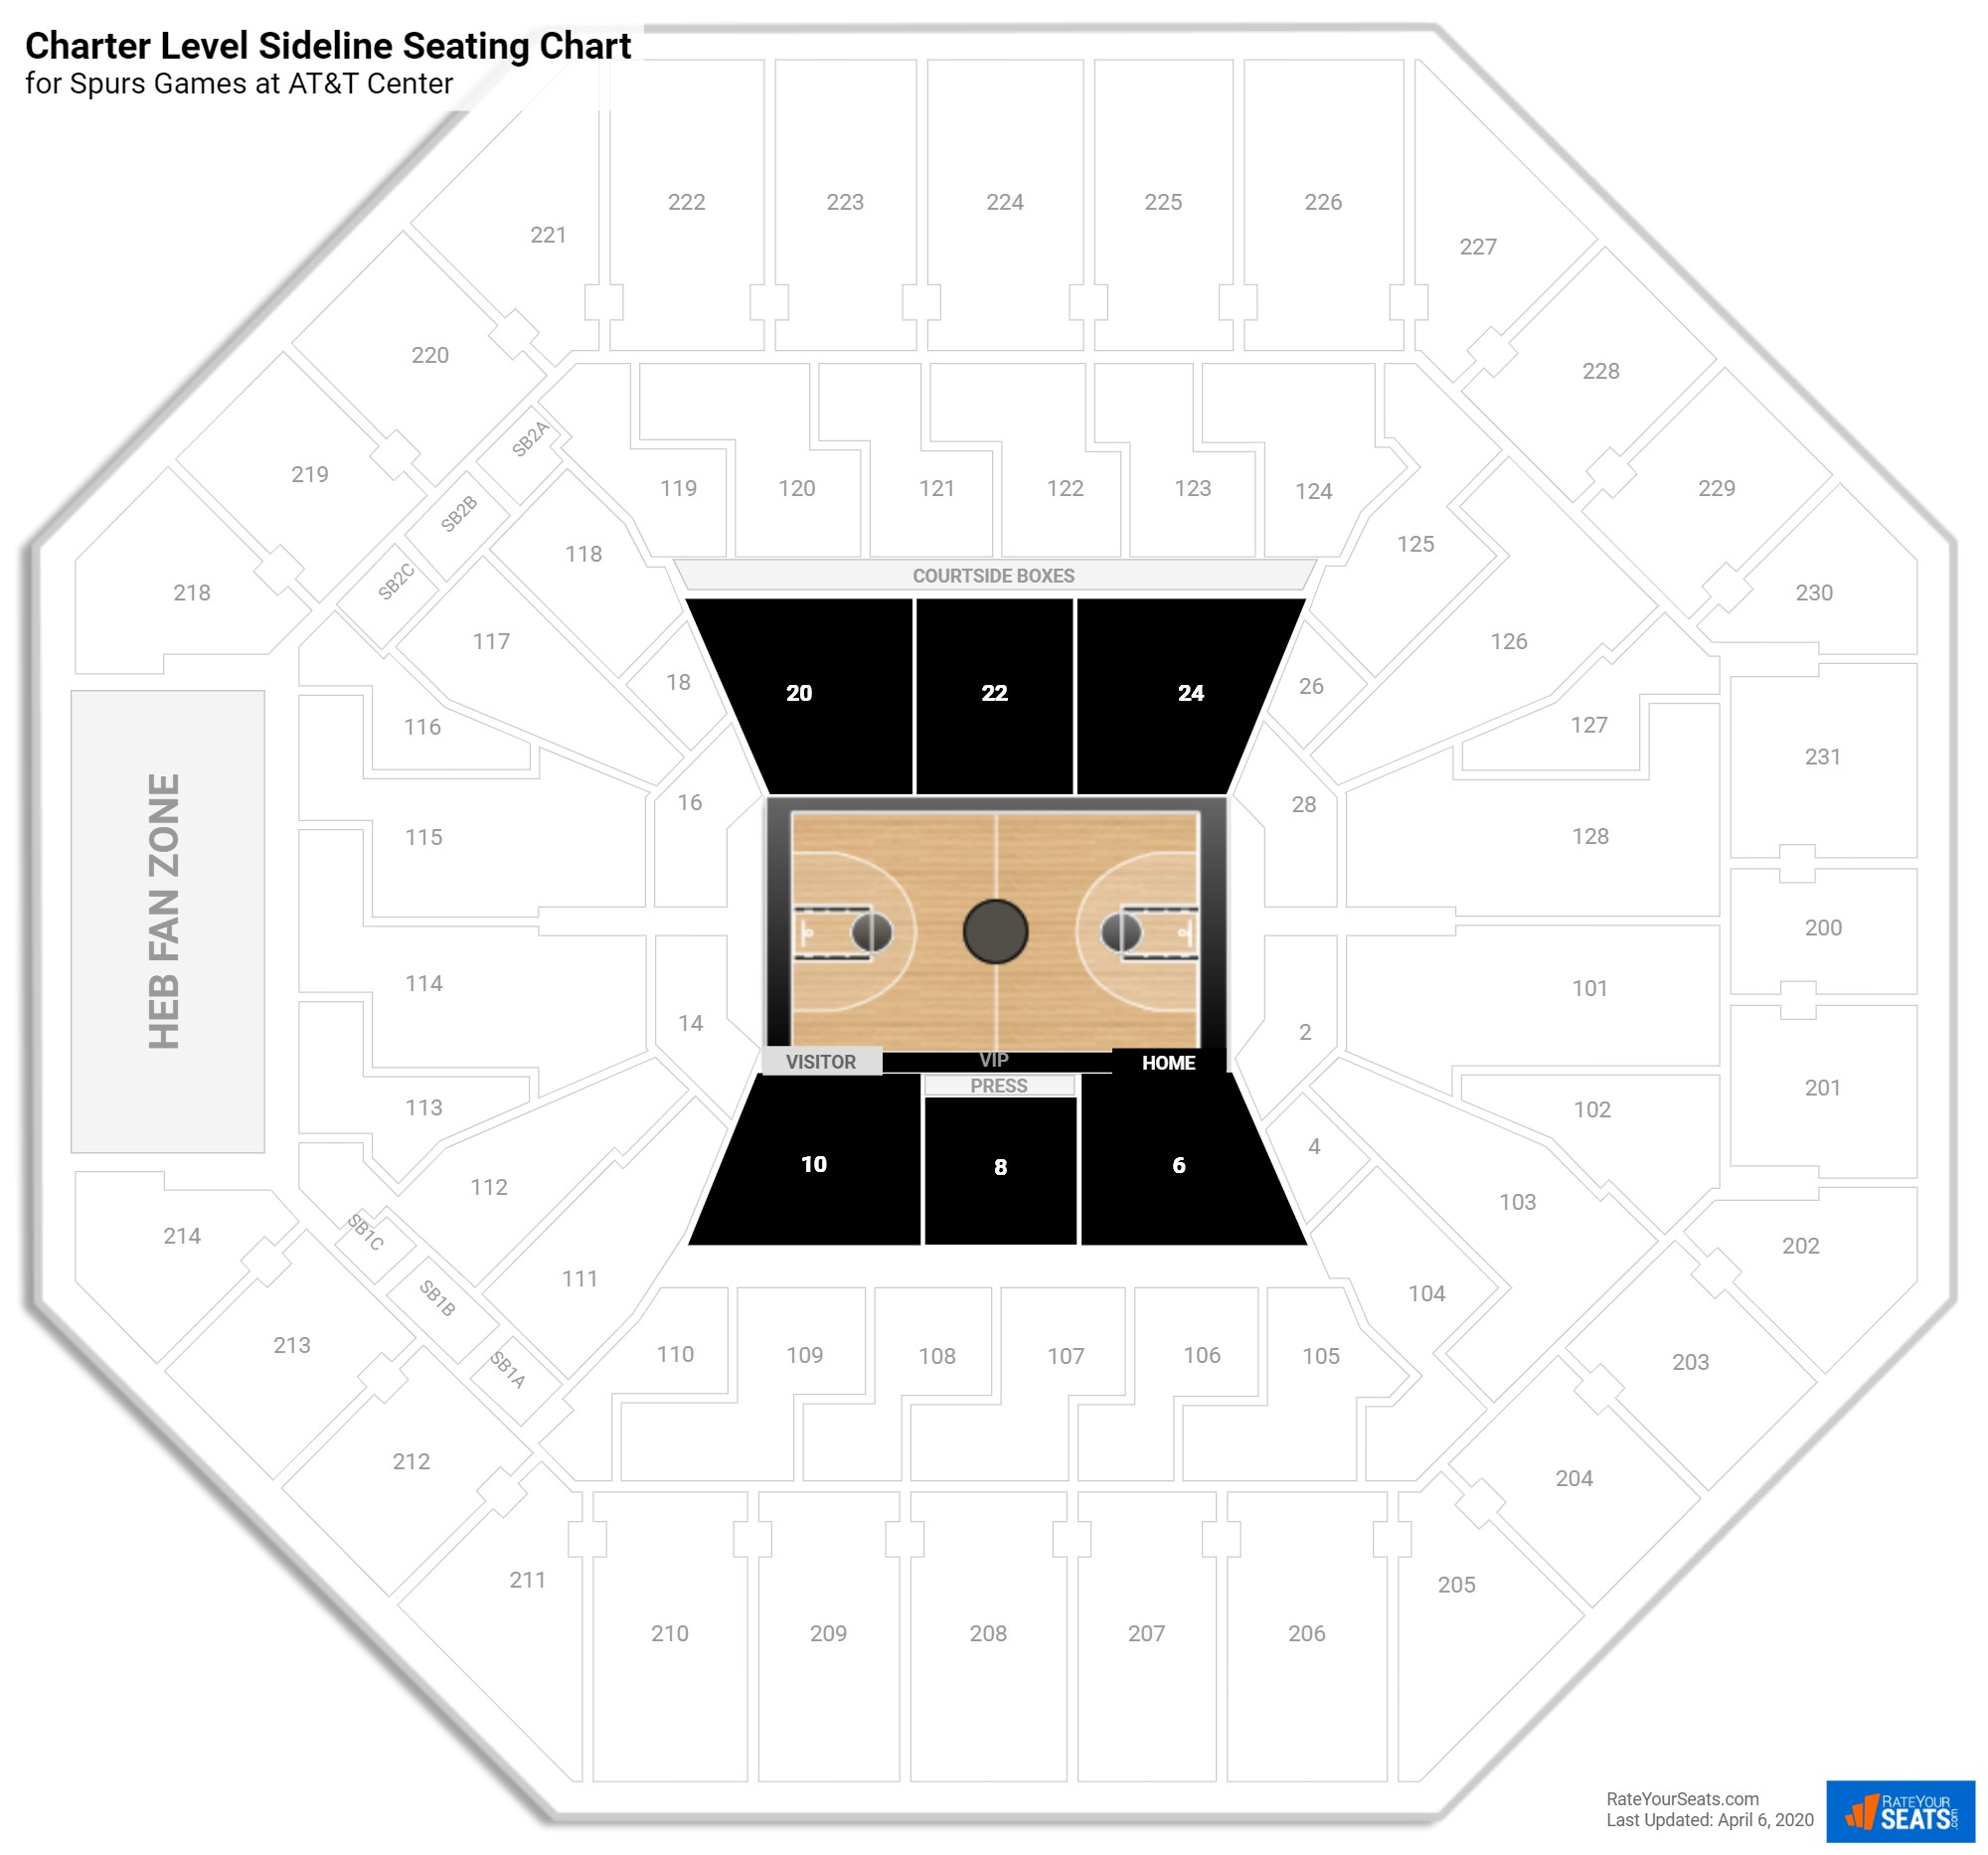 AT&T Center Charter Sideline seating chart